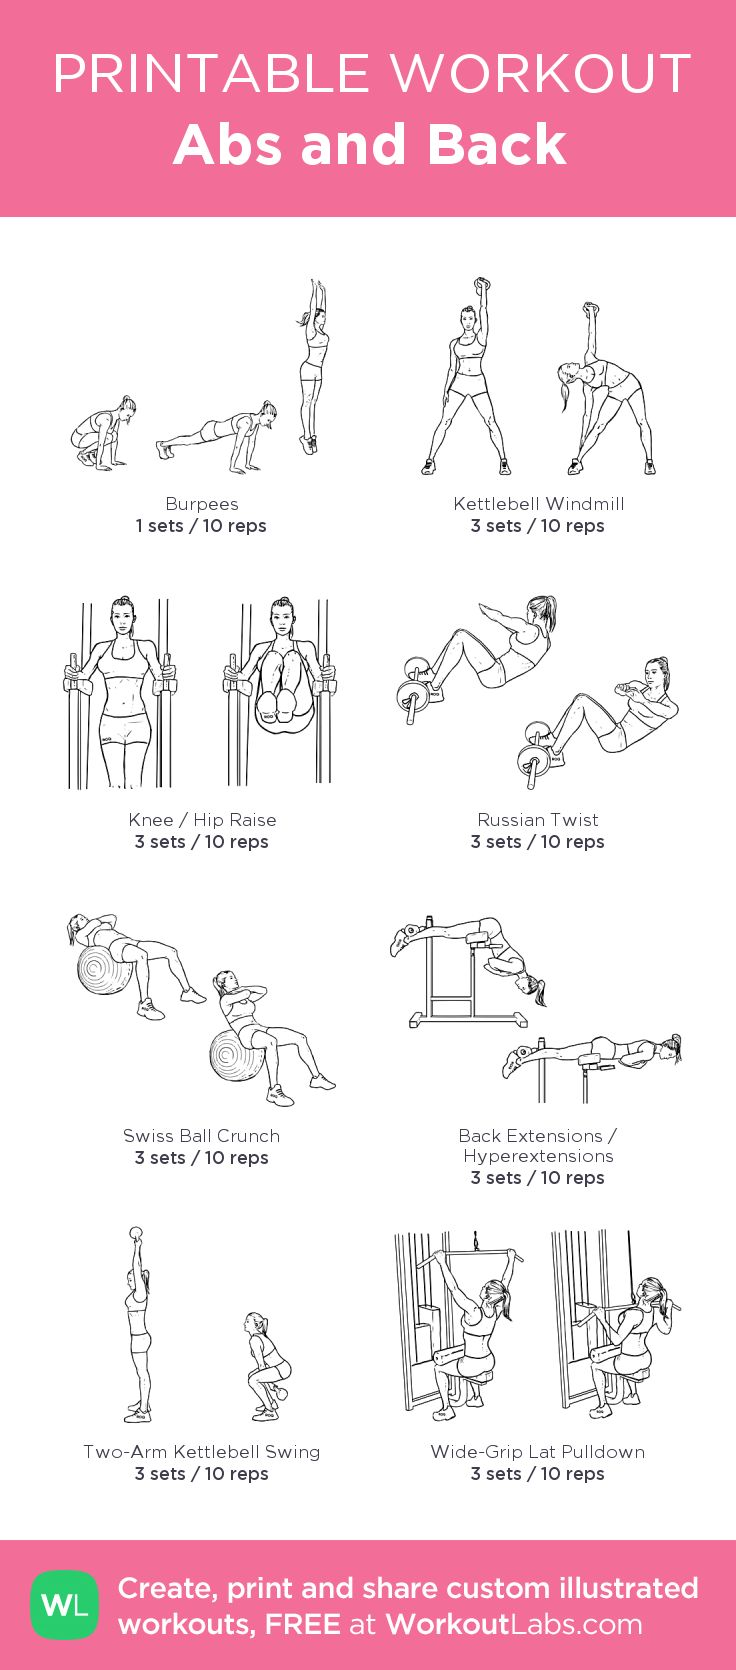 Abs and Back: my custom printable workout by @WorkoutLabs #workoutlabs #customwo… – Workouts